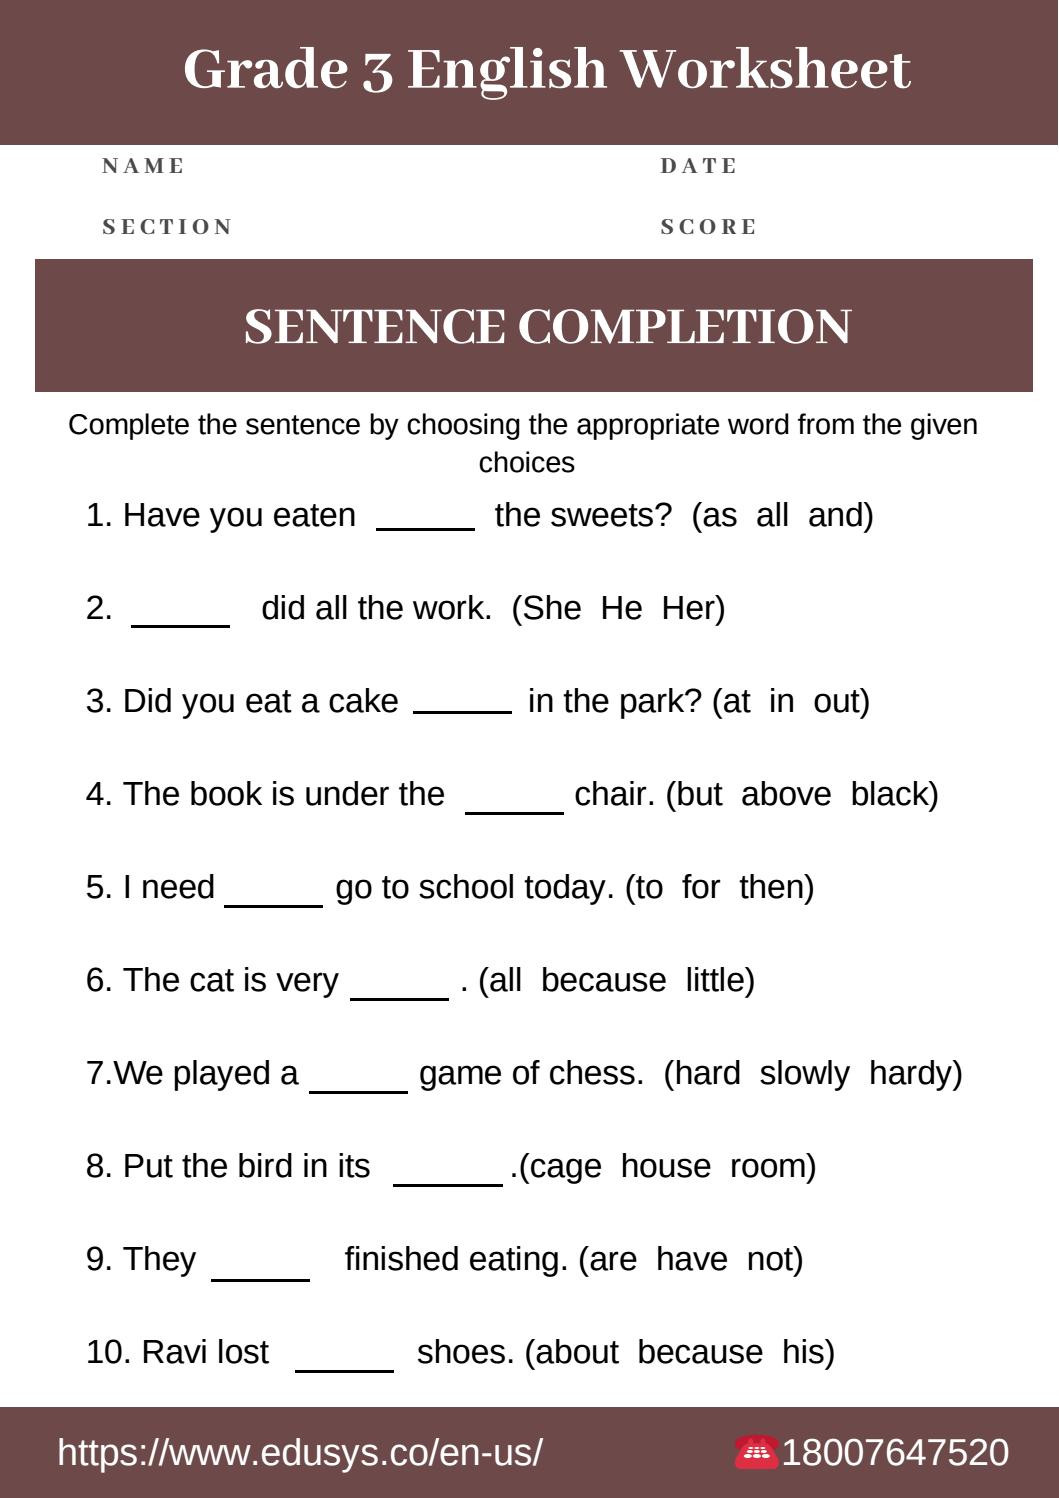 Grammar Worksheets for Grade 6 3rd Grade English Grammar Worksheet Free Pdf by Nithya issuu